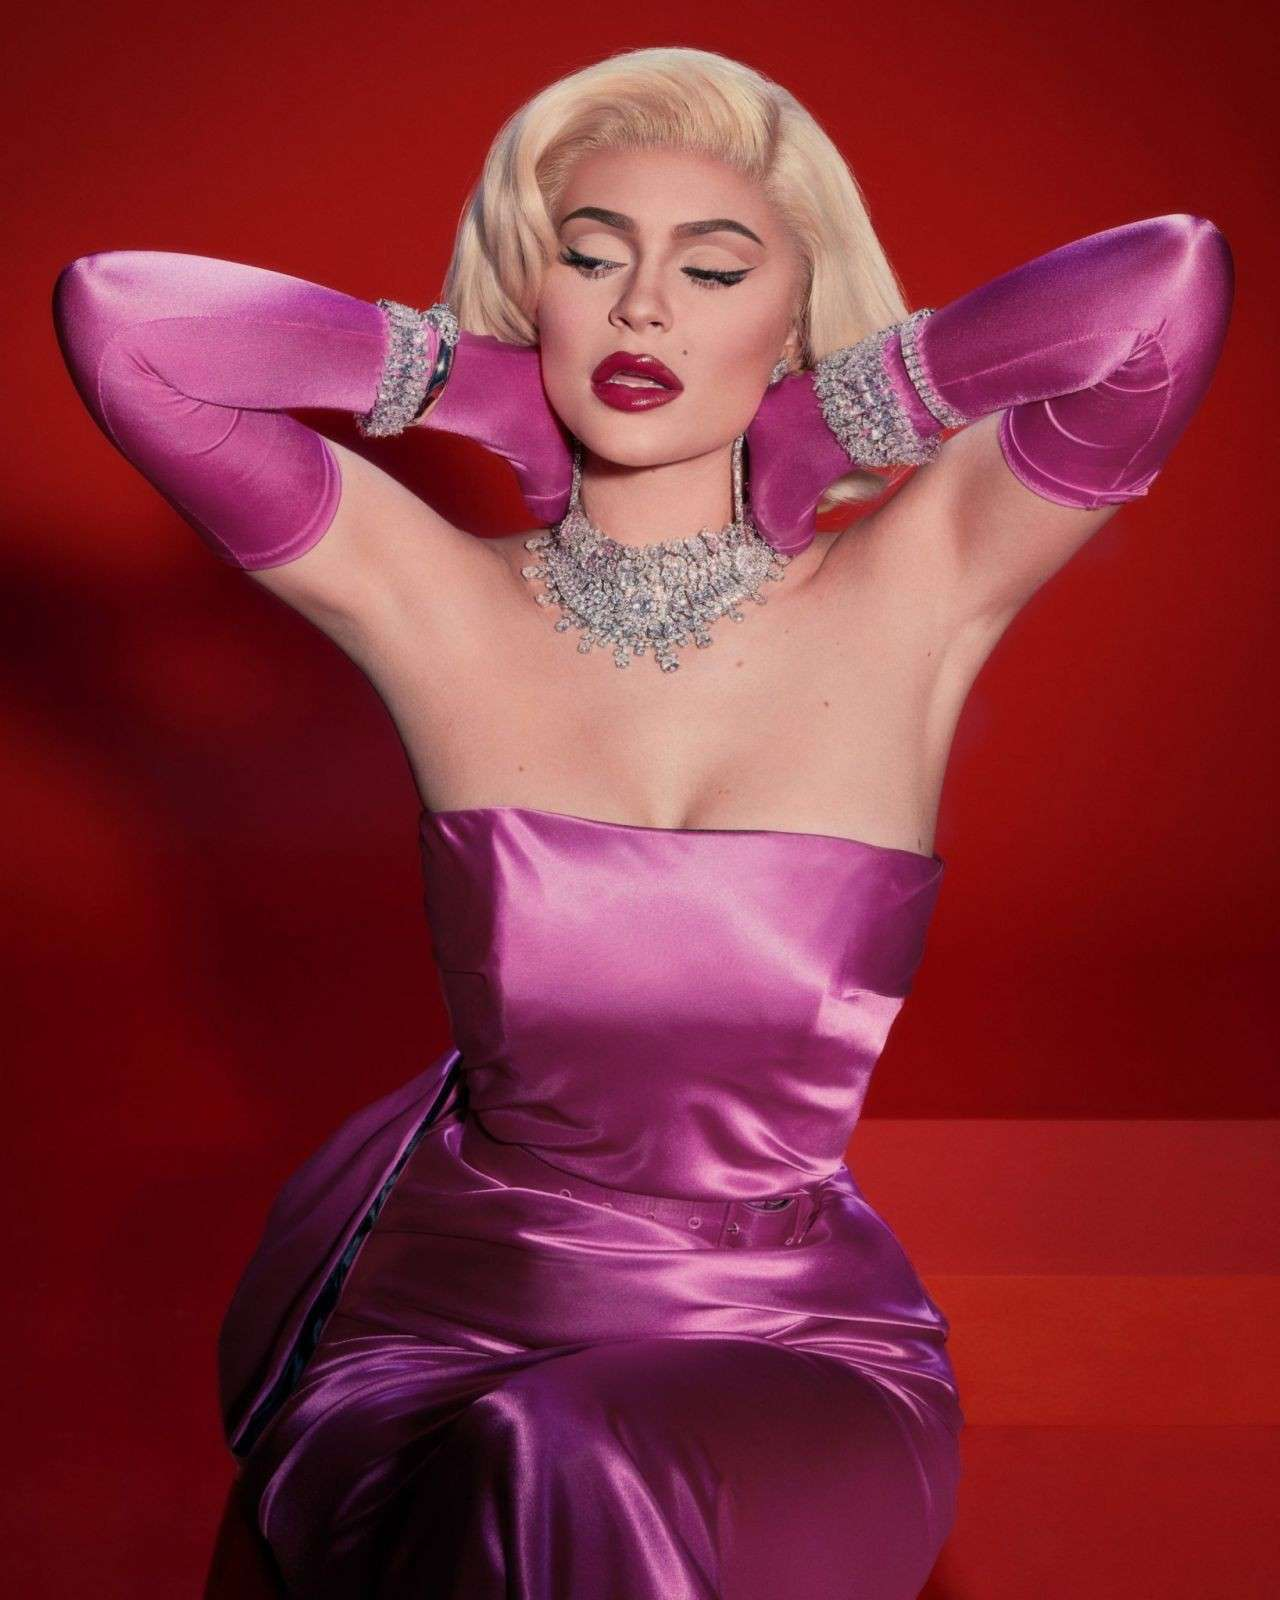 Kylie Jenner Marilyn Monroe Style Photoshoot